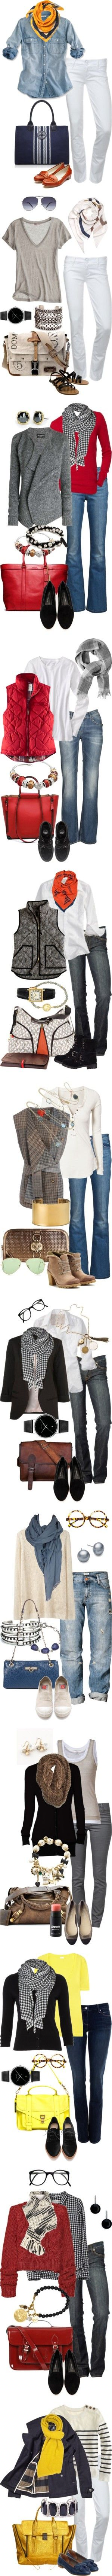 Simple Favorites by simple-wardrobe on Polyvore featuring Hudson Jeans, J.Crew, ReLuxe, Tory Burch, Rupert Sanderson, Calypso St. Barth, K. Jacques, Adddress, Georg Jensen and DANNIJO